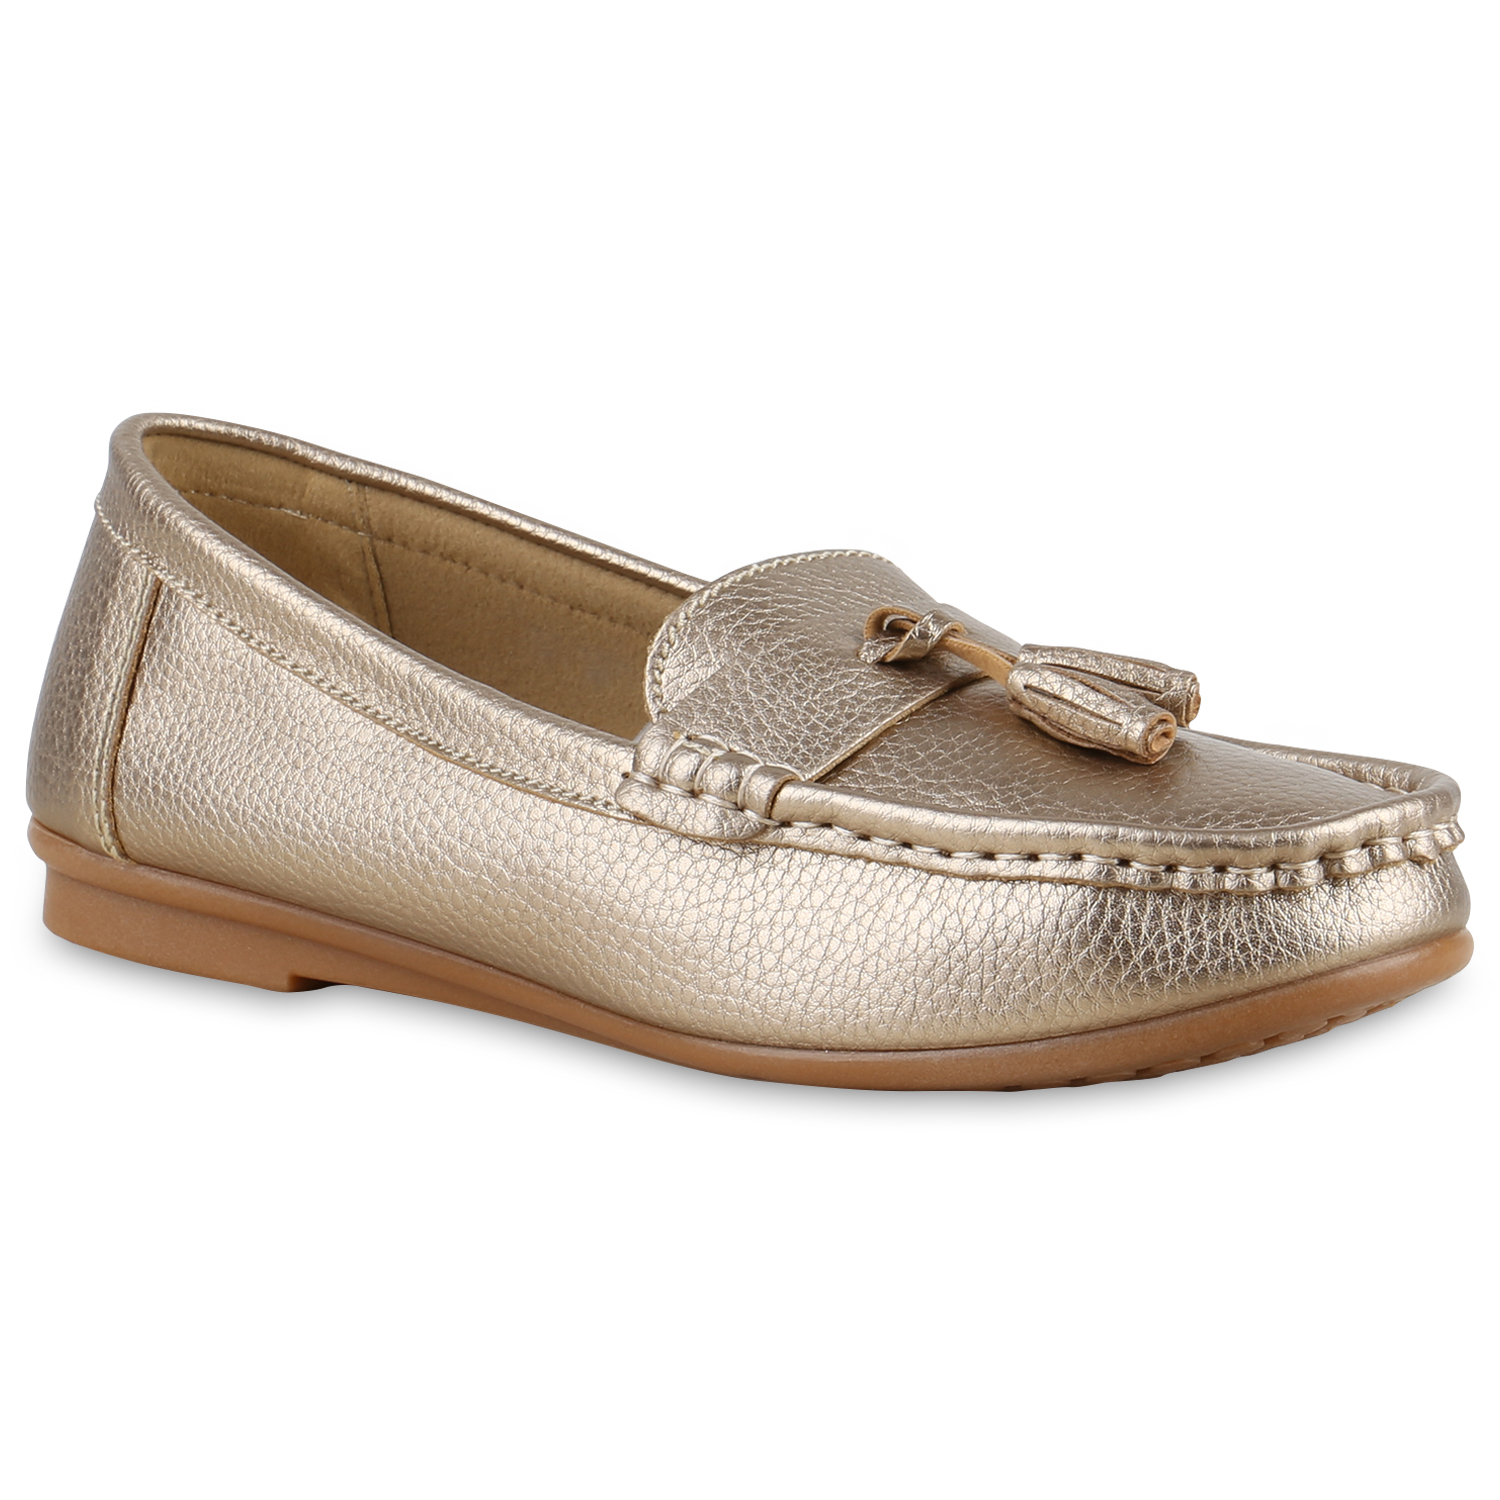 damen slipper tassel loafer quasten schuhe flats metallic 815111 ebay. Black Bedroom Furniture Sets. Home Design Ideas